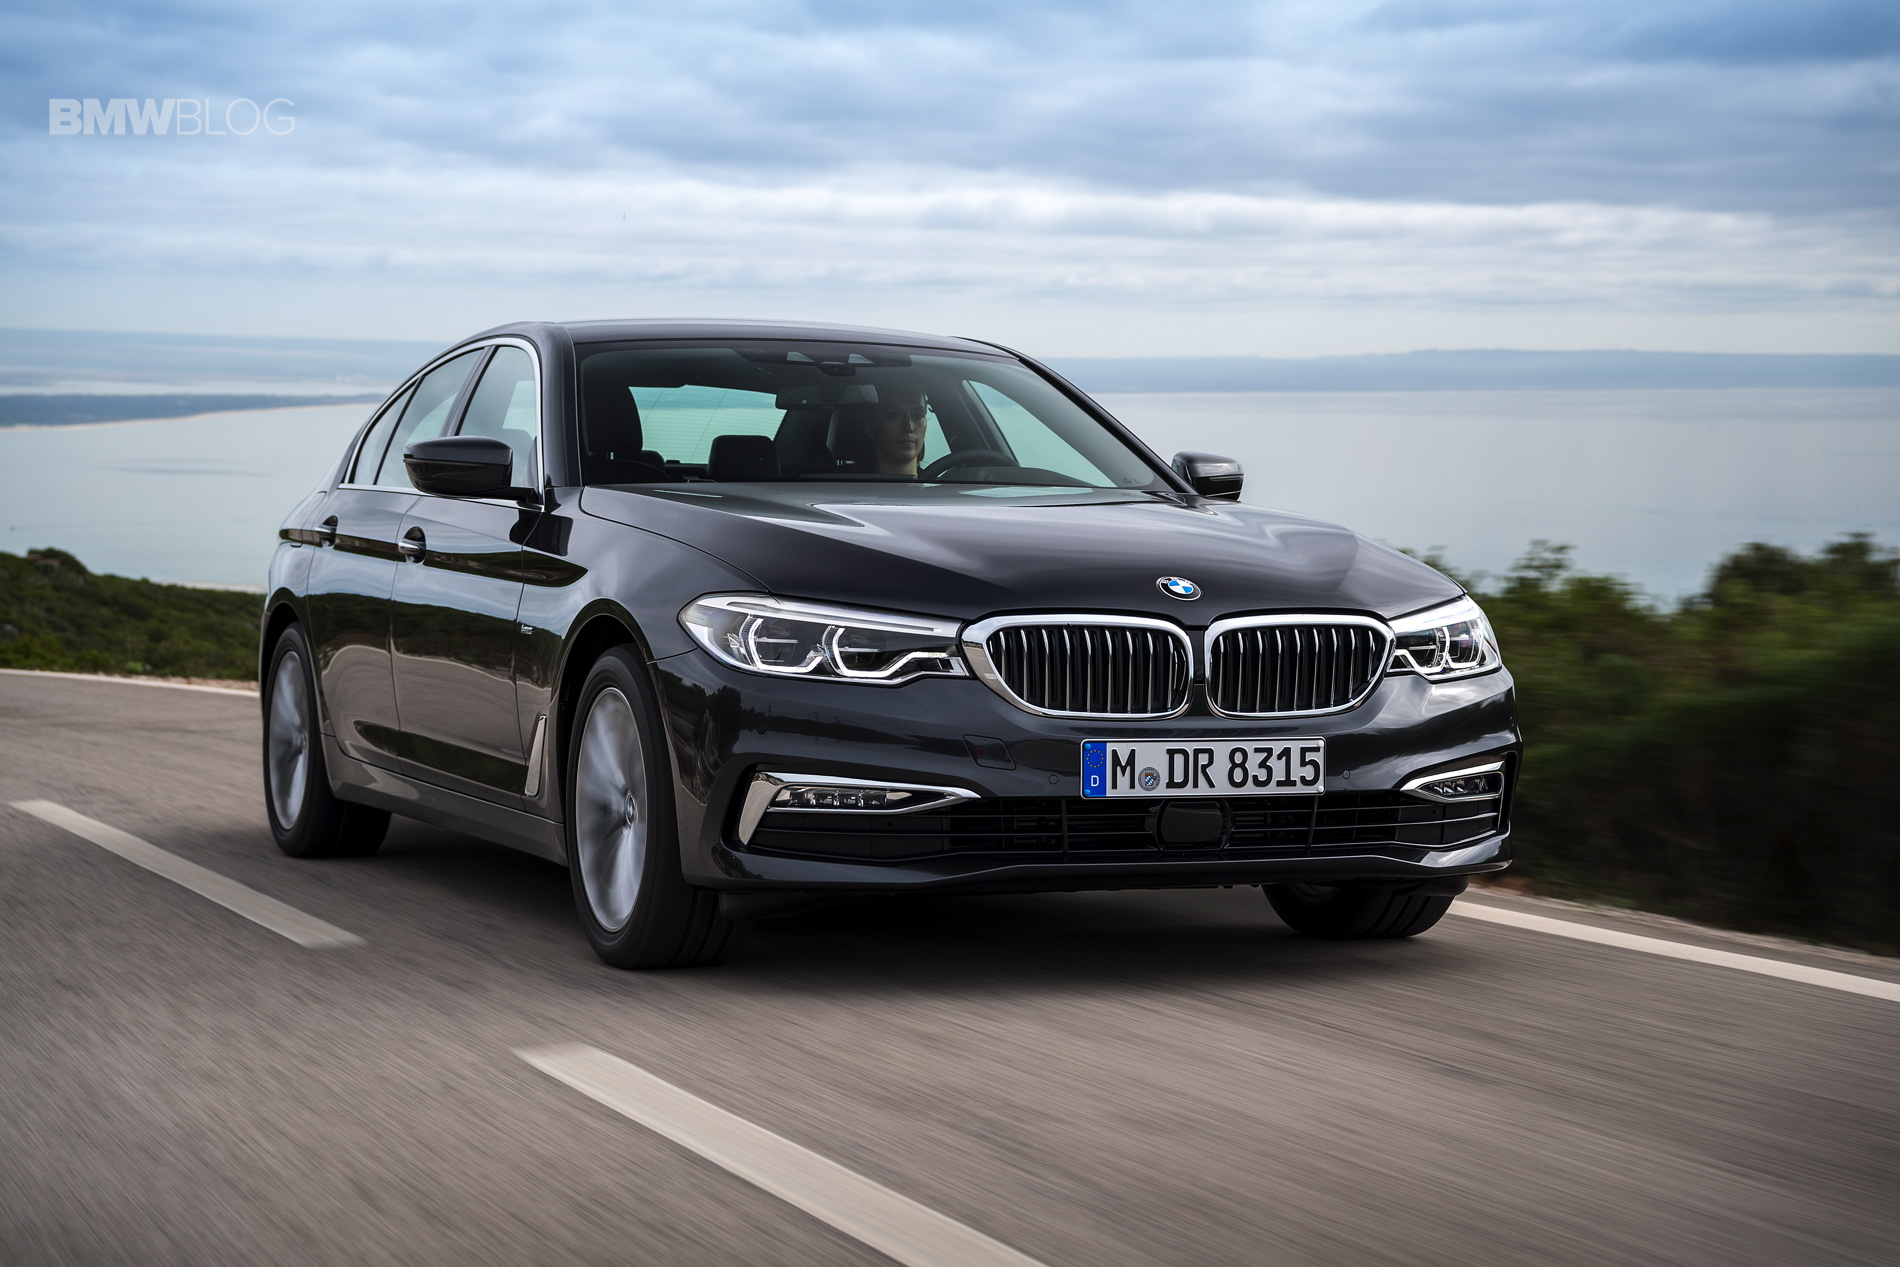 The New Bmw 540d Xdrive Might Be My Favorite All Around American Bimmer